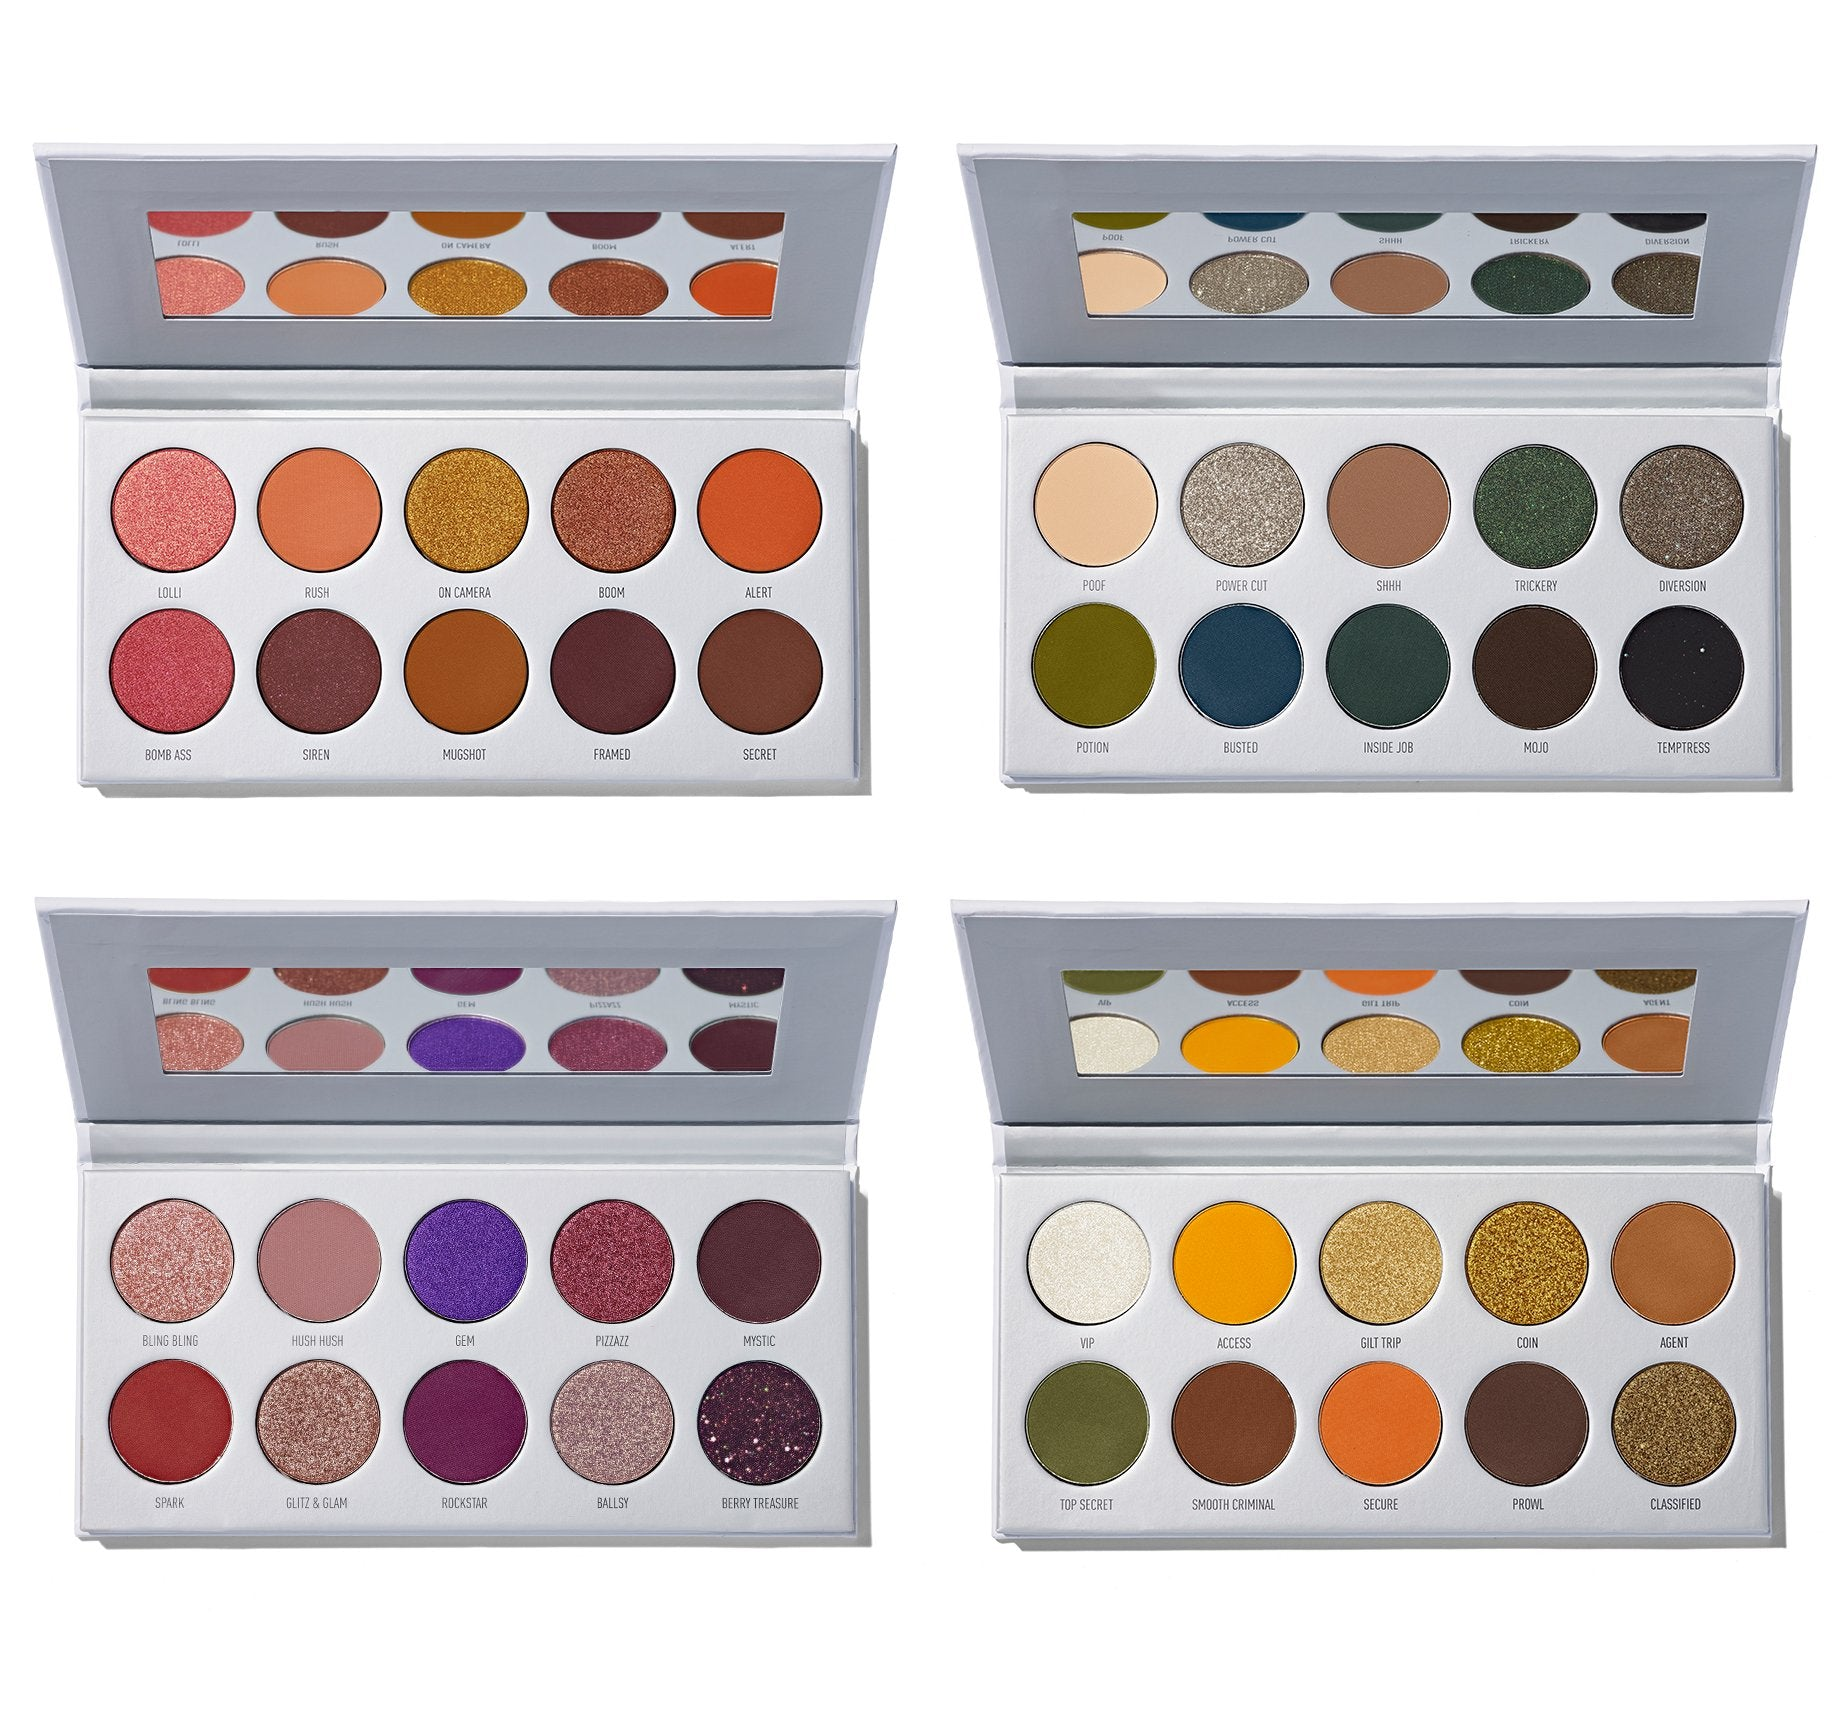 JACLYN HILL EYESHADOW PALETTE COLLECTION, view larger image